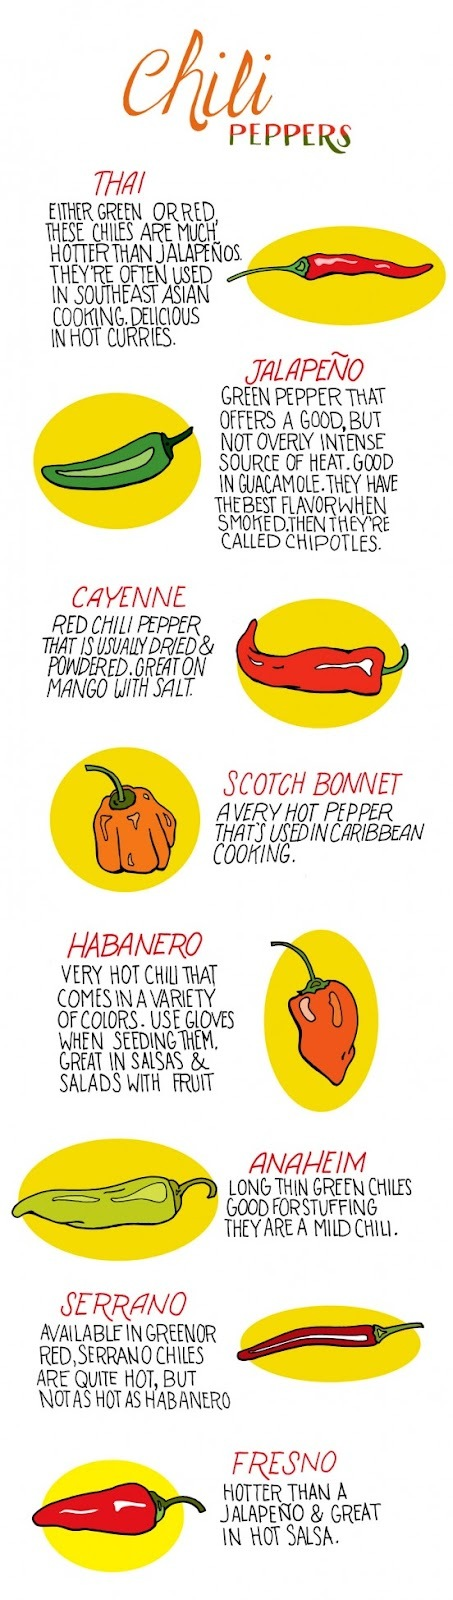 Know the Chili Pepper